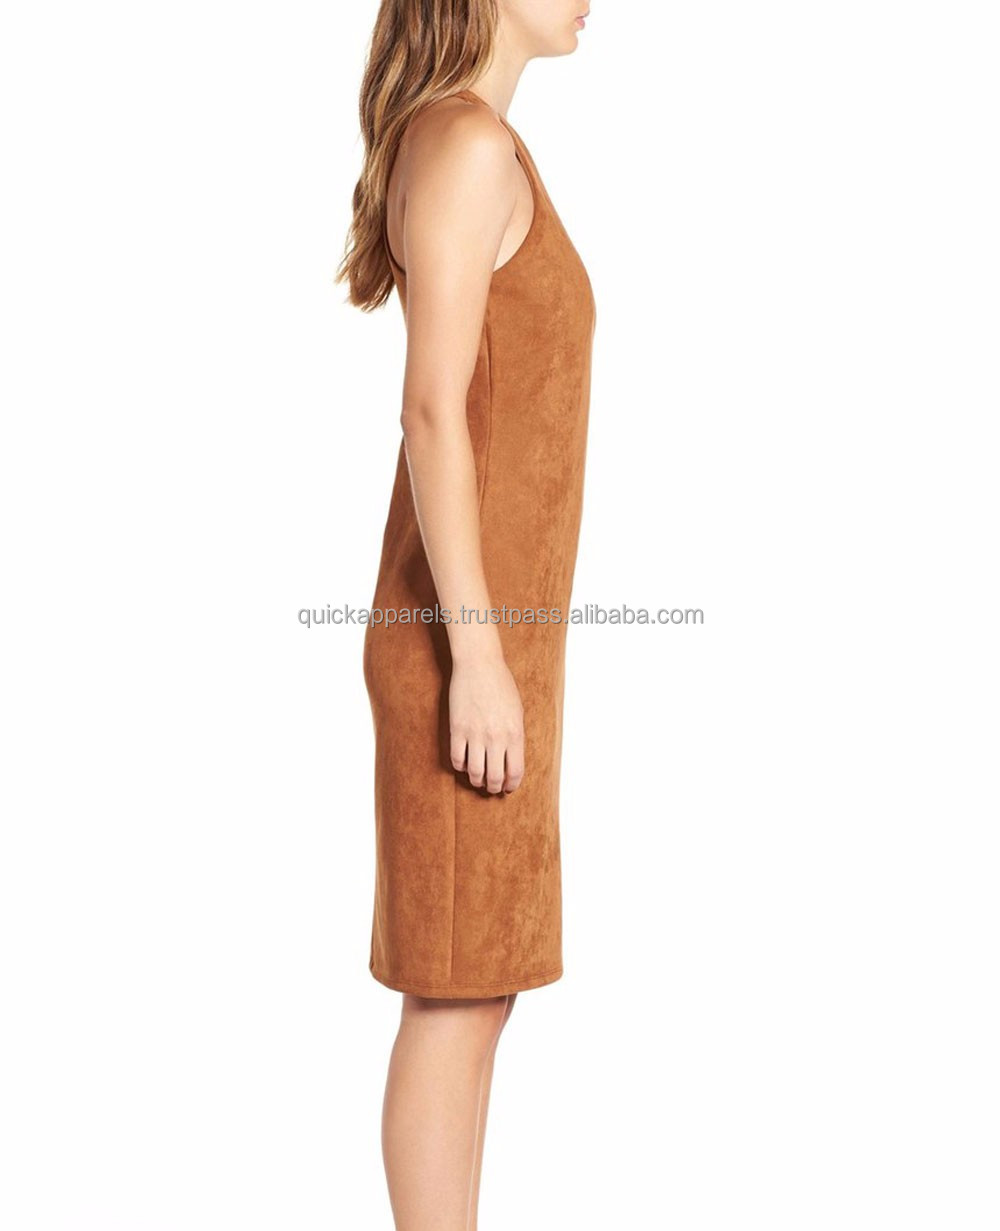 Top quality wholesale best selling maxi dresses women leather dresses